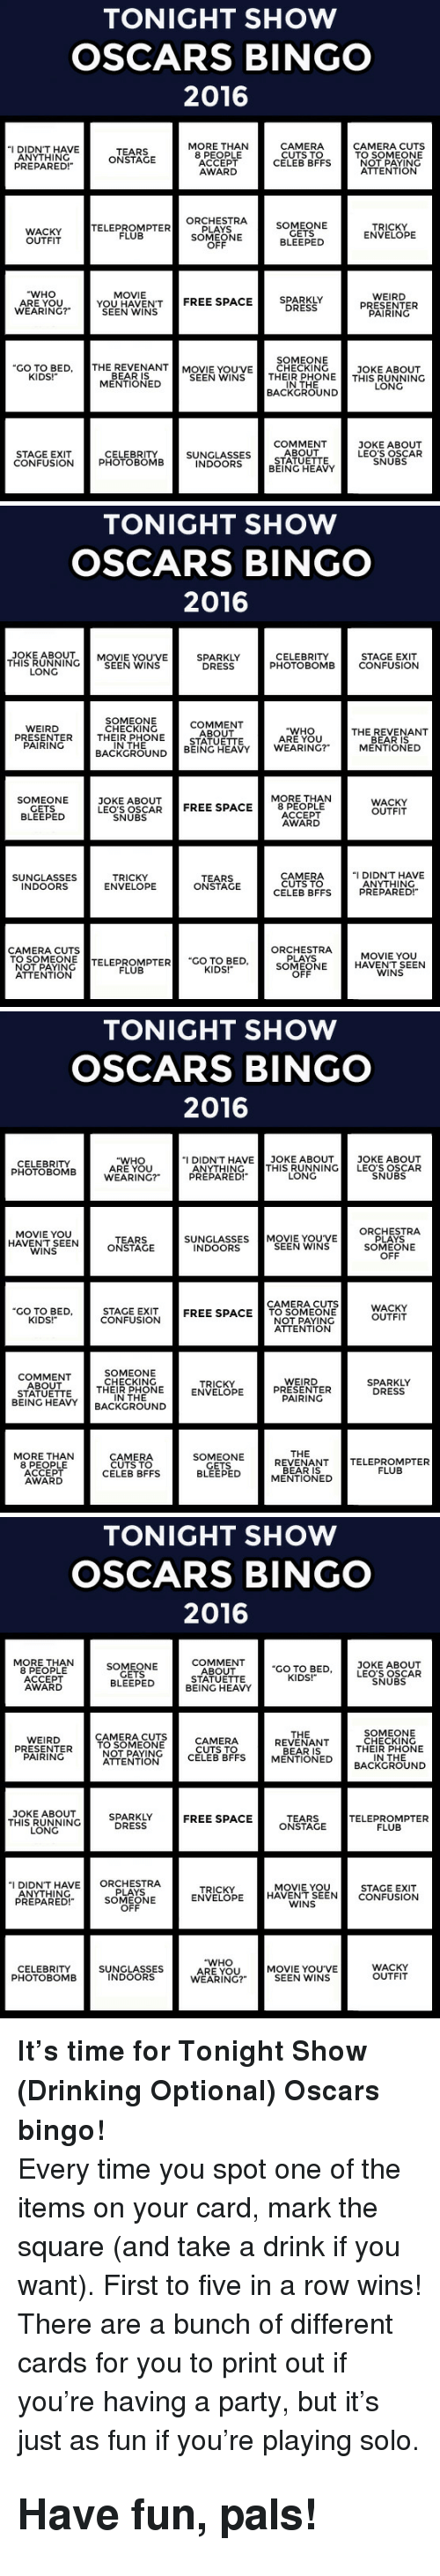 """Drinking, Oscars, and Party: TONIGHT SHOW  OSCARS BINGO  2016  MORE THAN  8 PEOPLE  ACCEPT  AWARD  CAMERA  CUTS TO  CELEB BFFS  CAMERA CUTS  TO SOMEONE  NOT PAYING  ATTENTION  I DIDN'T HAVE  ANYTHING  TEARS  ONSTAGE  PREPARED!  SOMEONE  GETS  BLEEPED  WACKY  OUTFIT  TELEPROMPTER  FLUPTER ORCH  PLAYS  SOMEONE  OFF  TRICKY  ENVELOPE  """"WHO  ARE YOU  WEARING?""""  MOVIE  SEEN WENSTREE SPACE  SPARKLY  DRESS  WEIRD  PRESENTER  PAIRING  SOMEONE  GO TO BED, THE REVENANTMOVIE YOU'VE CHECKING  JOKE ABOUT  KIDS!  BEAR IS  MENTIONED  SEEN WINS THEIR PHONETHIS RUNNING  IN THE  BACKGROUND  LONG  COMMENT  ABOUT  STATUETTE  BEING HEAVY  JOKE ABOUT  LEO'S OSCAR  SNUBS  STAGE EXIT  CONFUSION  CELEBRITY  PHOTOBOMB  SUNGLASSES  INDOORS   TONIGHT SHOW  OSCARS BINGO  2016  THIS RUNNING  LONG  JOKE ABOUTMOVIE YOU'VE  SPARKLY  DRESS  STAGE EXIT  PHOTOBOMBCONFUSION  CELEBRITY  SEEN WINS  SOMEONE  CHECKING  COMMENT  ABOUT  STATUETTE  WEIRD  """"WHO  ARE YOU  THE REVENANT  PRESENTERTHEIR PHONE  PAIRING  IN THE  MENTIONED  BACKGROUND BEING HEAVY WEARING?  MORE THAN  SOMEONE  GETS  BLEEPED  JOKE ABOUT  LEO'S OSCARFREE SPACE8 P  WACKY  OUTFIT  ACCEPT  AWARD  SNUBS  SUNGLASSES  INDOORS  TRICKY  ENVELOPE  TEARS  ONSTAGE  CAMERA  CUTS TO  CELEB BFFS  I DIDN'T HAVE  ANYTHING  PREPARED!  ORCHESTRA  PLAYS  SOMEONE  OFF  CAMERA CUTS  TO SOMEONE  OTPAYINCTELEPROMPTER """"CO TO BED  MOVIE YOU  HAVENT SEEN  WINS  FLUB  KIDS!  ATTENTION   TONIGHT SHOW  OSCARS BINGO  2016  """"I DIDN'T HAVE JOKE ABOUT JOKE ABOUT  CELEBRITY  PHOTOBOMB  """"WHO  ARE YOU  WEARING?""""  ANYTHINGTHIS RUNNING LEO'S OSCAR  PREPARED!  LONG  SNUBS  MOVIE YOU  HAVENT SEEN  WINS  ORCHESTRA  PLAYS  SOMEONE  OFF  SUNGLASSES MOVIE YOUVE  TEARS  ONSTAGE  SEEN WINS  INDOORS  CAMERA CUTS  GO TO BED  KIDS!  STAGE EXIT  CONFUSION  WACKY  OUTFIT  FREE SPACETO SOMEONE  NOT PAYING  ATTENTION  COMMENT  ABOUT  STATUETTE  BEING HEAV  SOMEONE  CHECKING  THEIR PHONE  IN THE  WEIRD  PRESENTER  PAIRING  TRICKY  ENVELOPE  SPARKLY  DRESS  CKGROUND  THE  MORE THAN  8 PEOPL"""